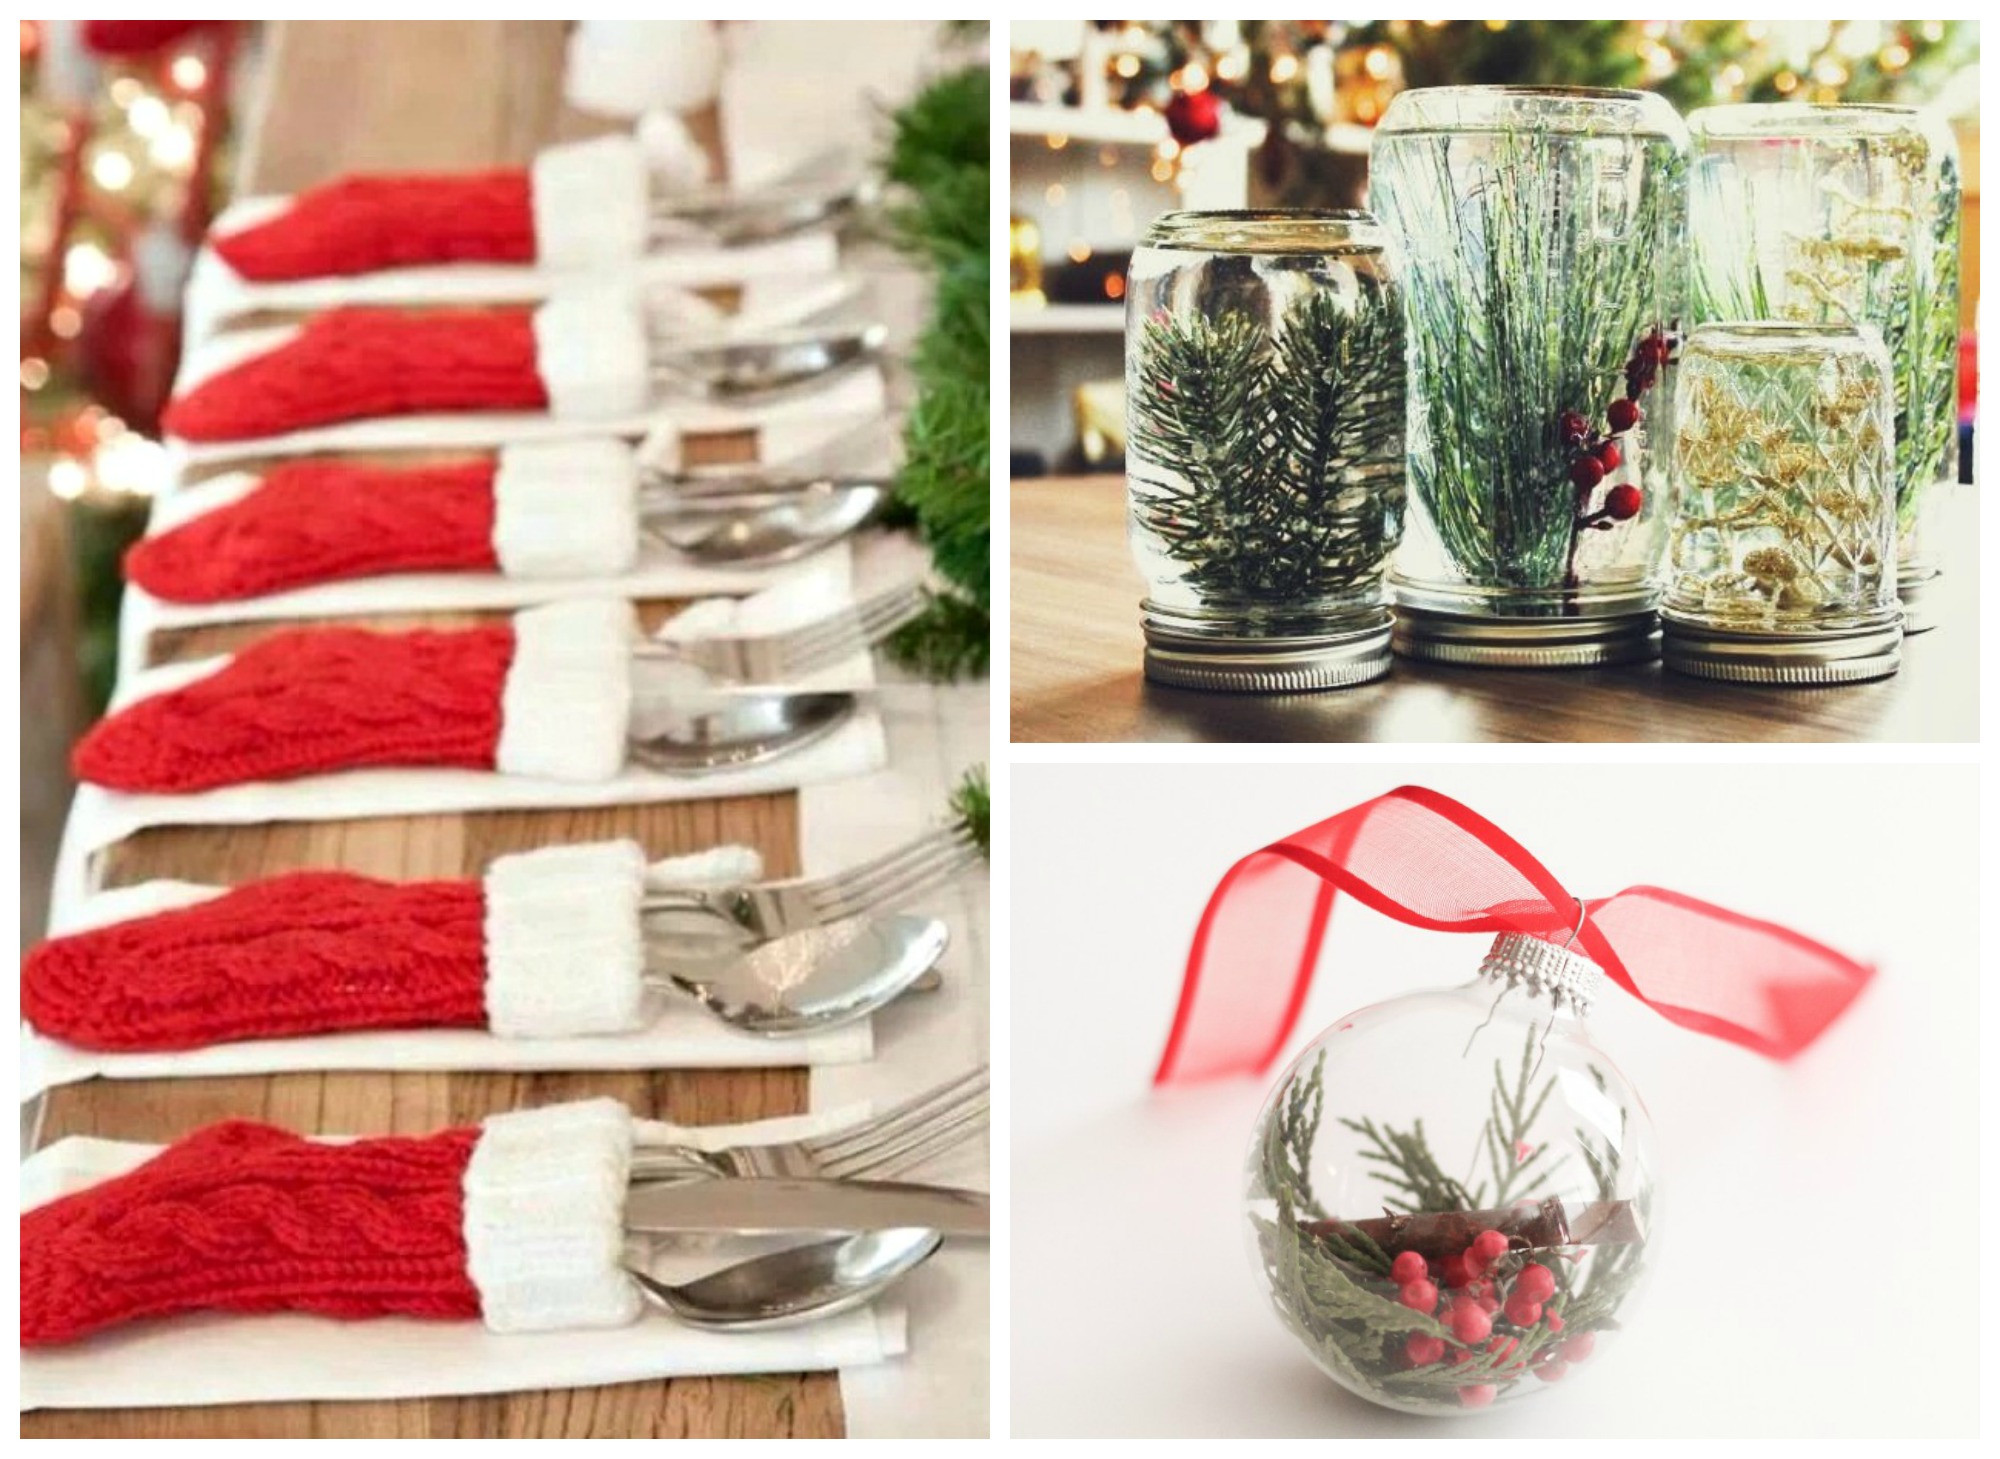 DIY Christmas Decorations  10 Dollar Store DIY Christmas Decorations that are Beyond Easy